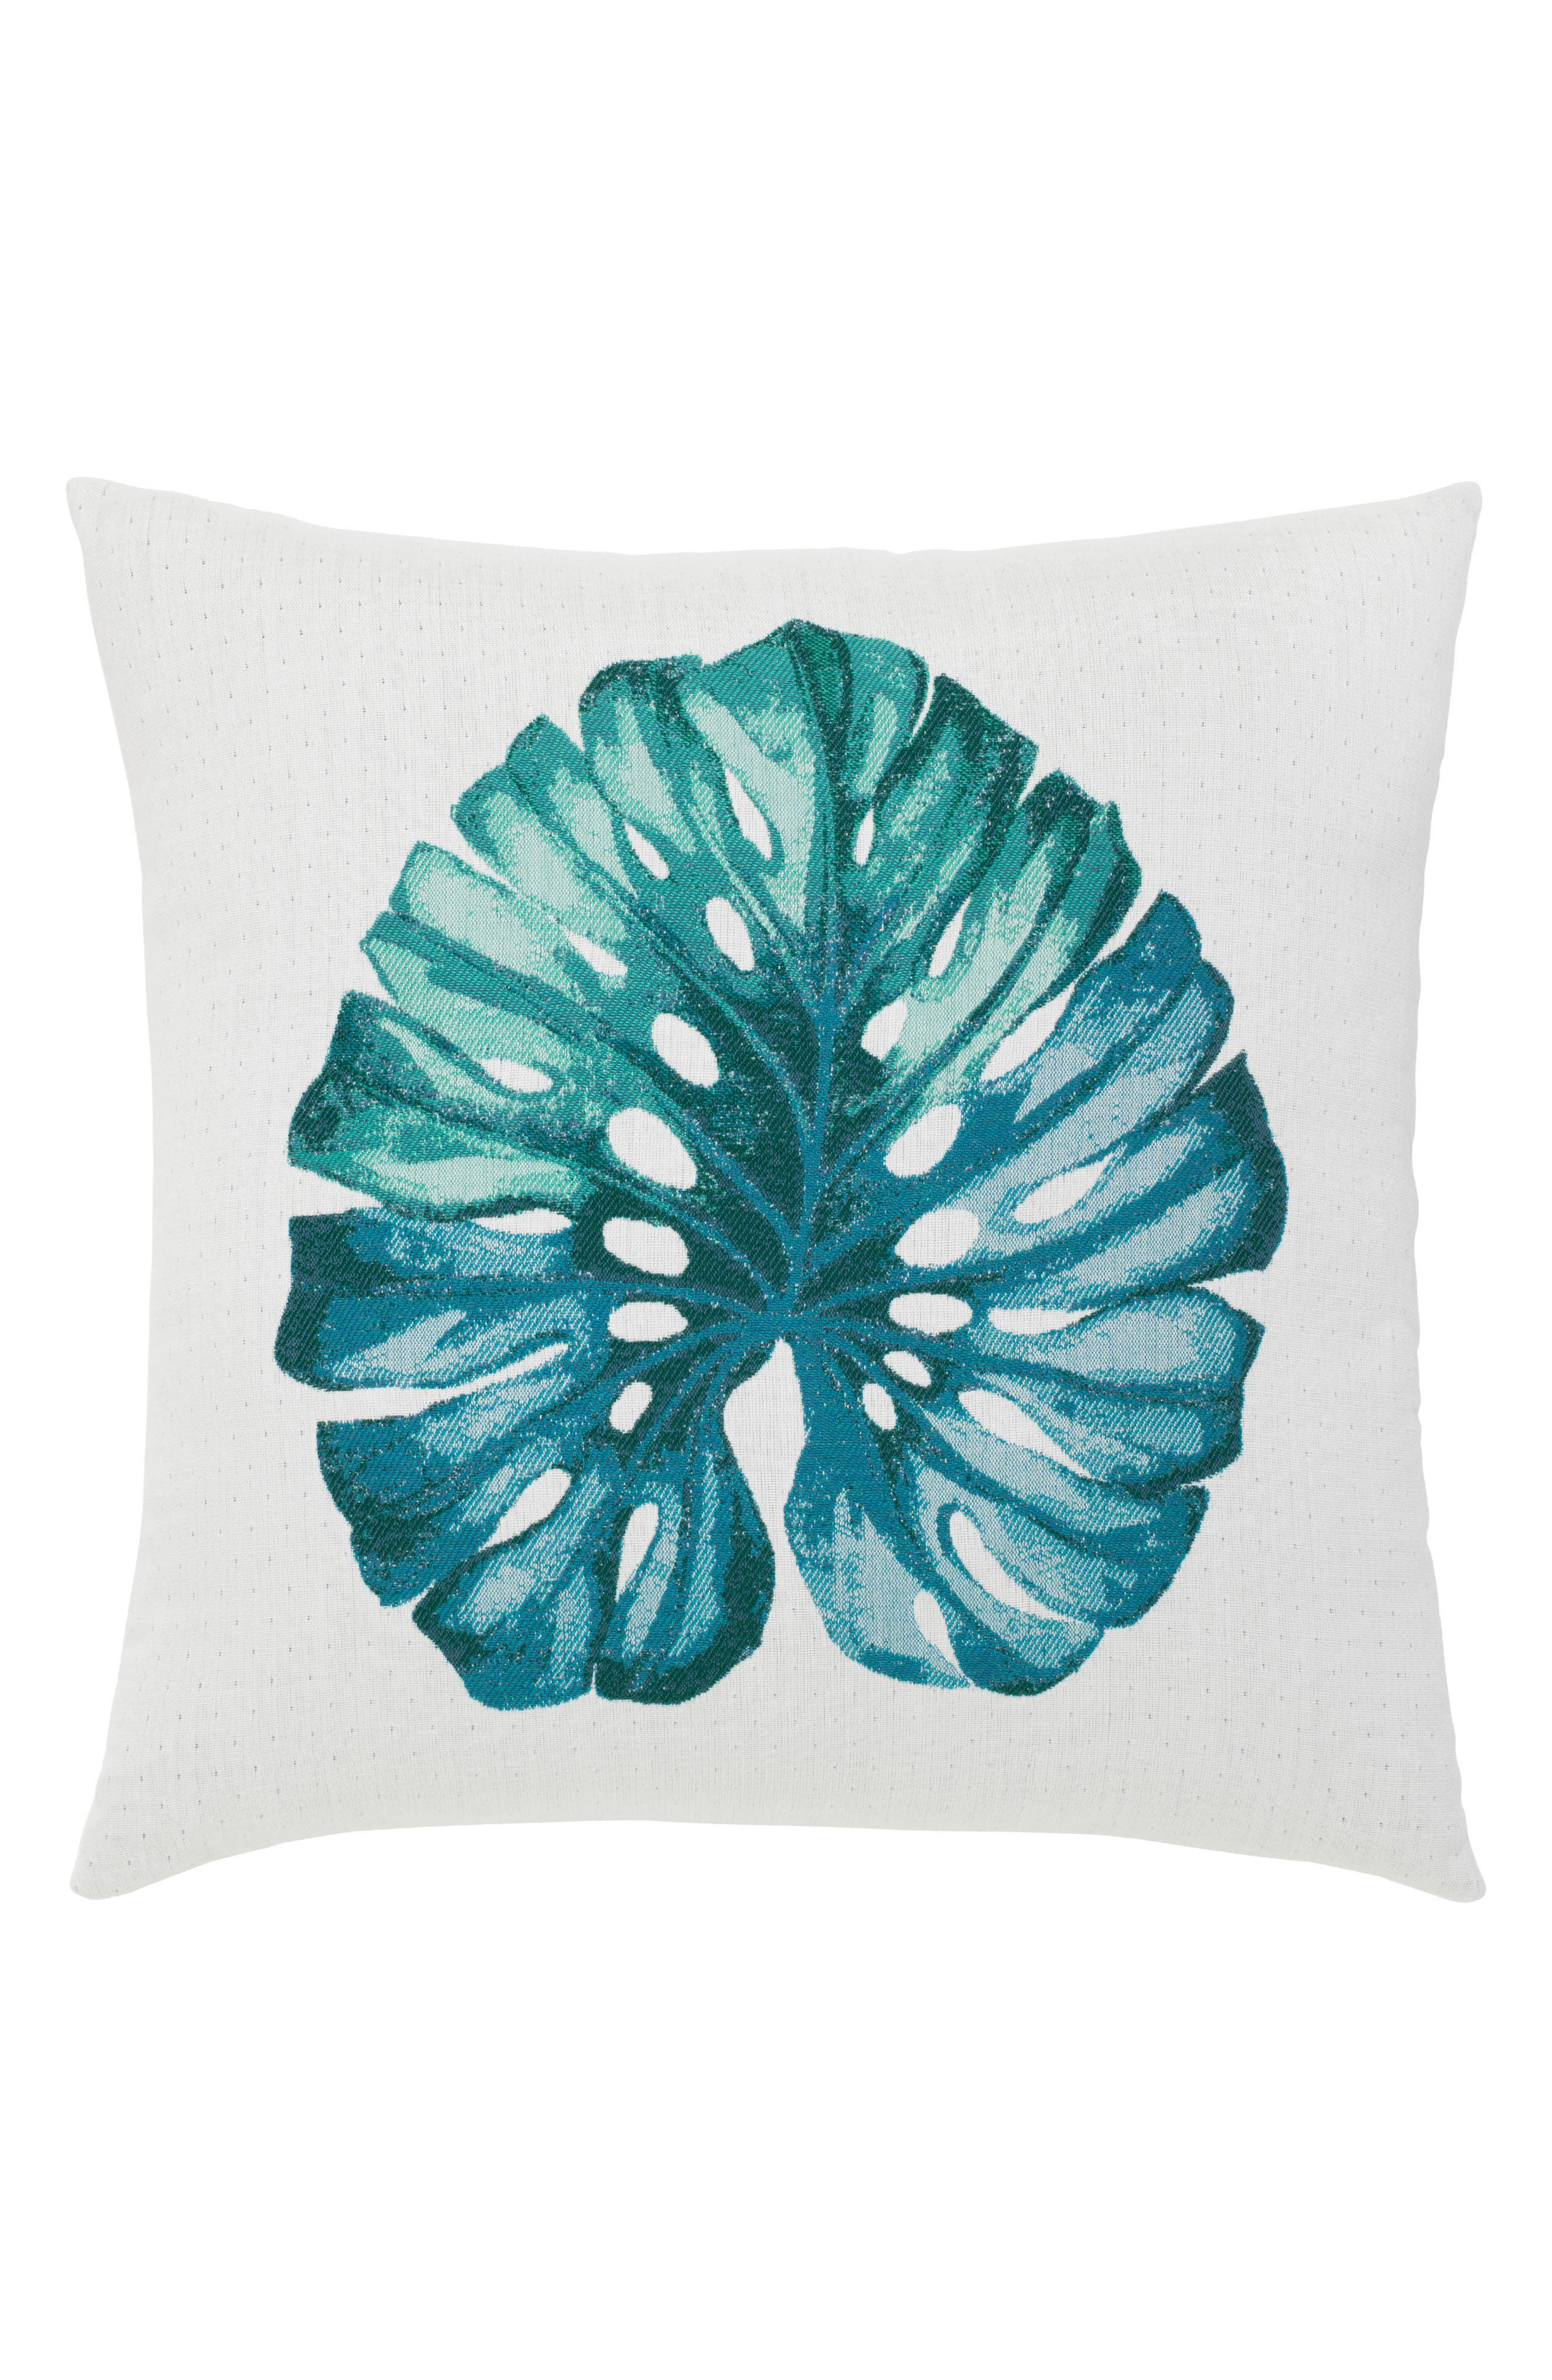 Elaine Smith Leaf Lagoon Indoor/Outdoor Accent Pillow